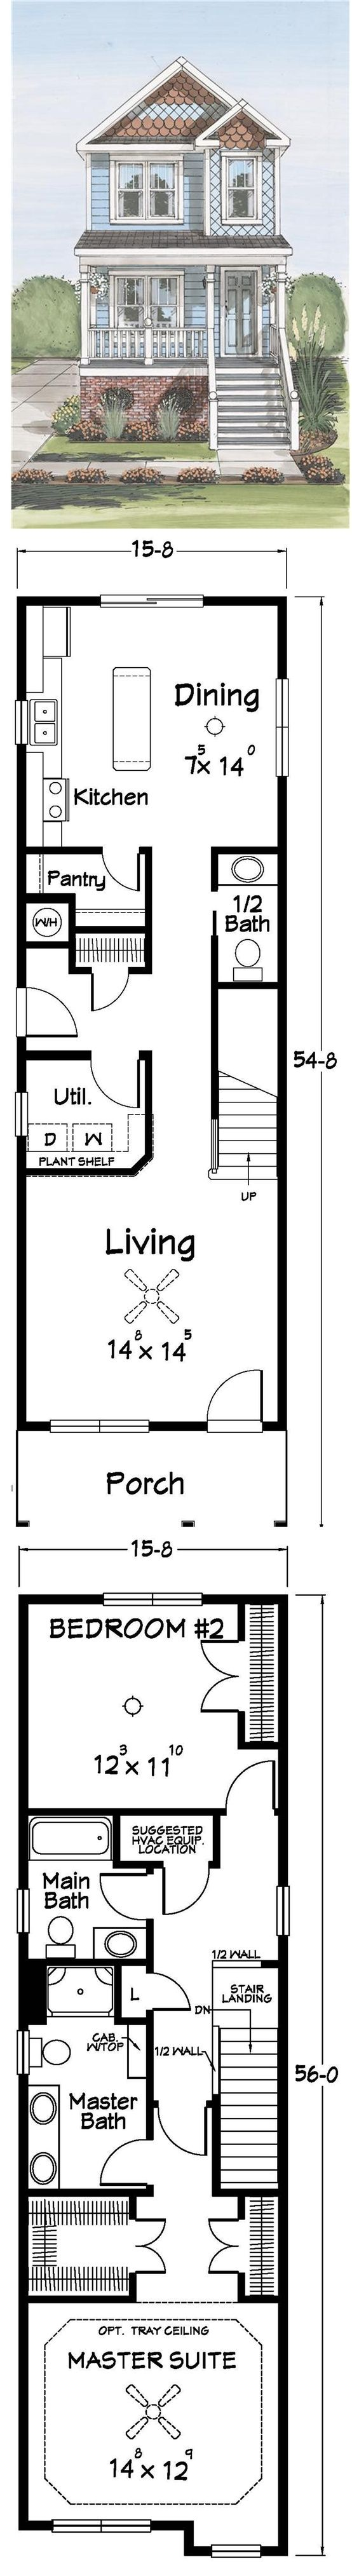 Tremendous 17 Best Ideas About Narrow House Plans On Pinterest Small Home Largest Home Design Picture Inspirations Pitcheantrous